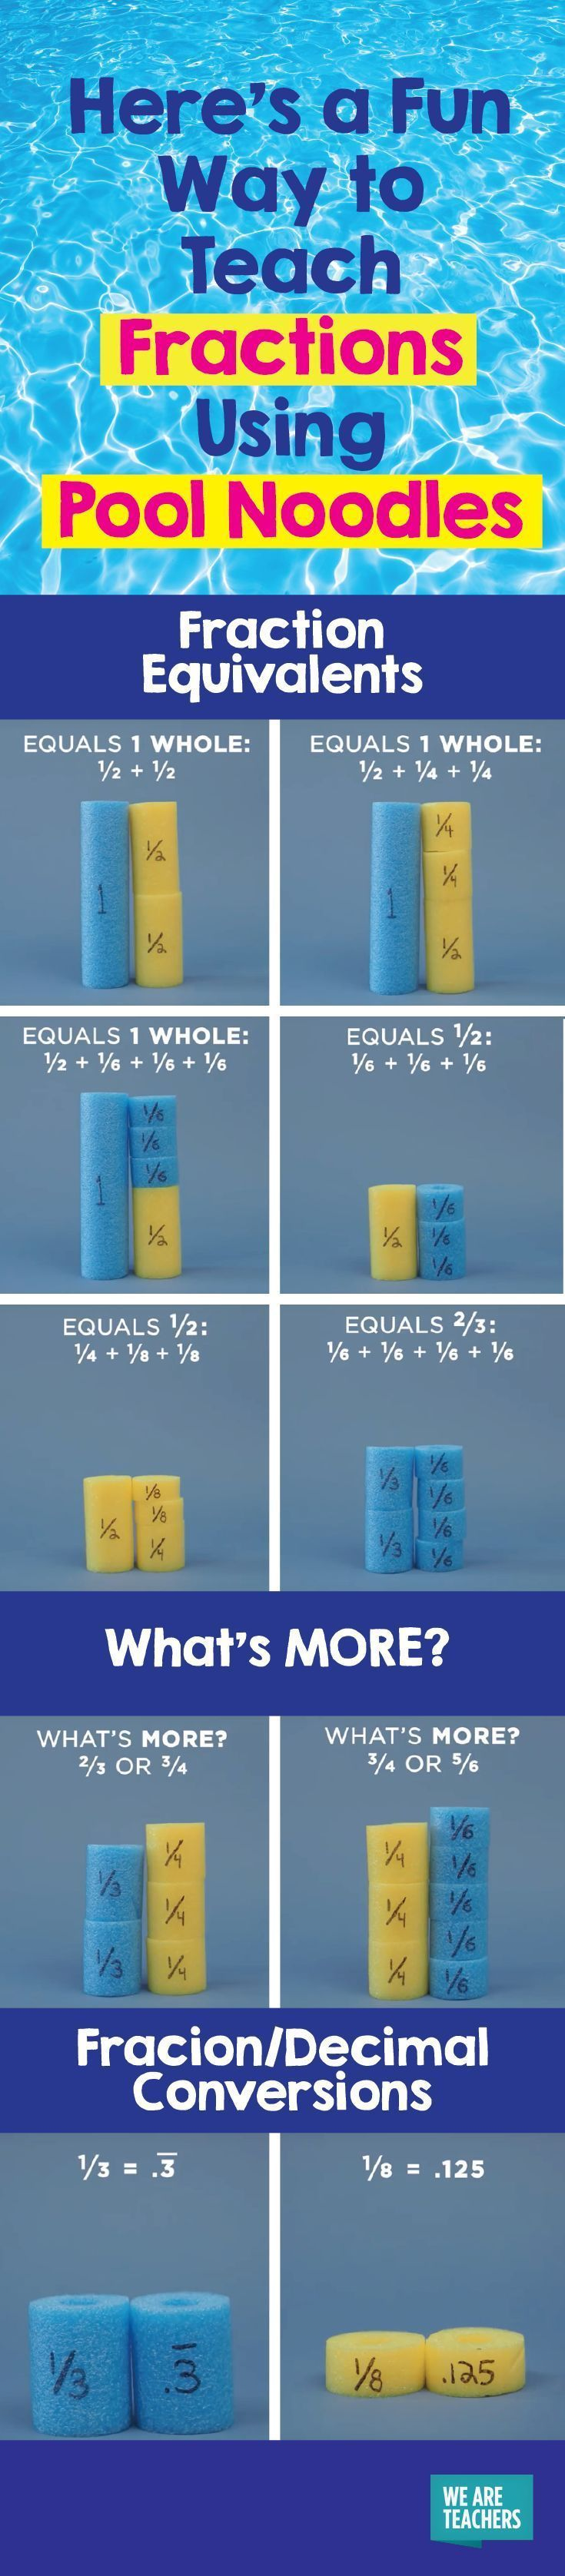 50 best fractions images on Pinterest | Fraction activities ...